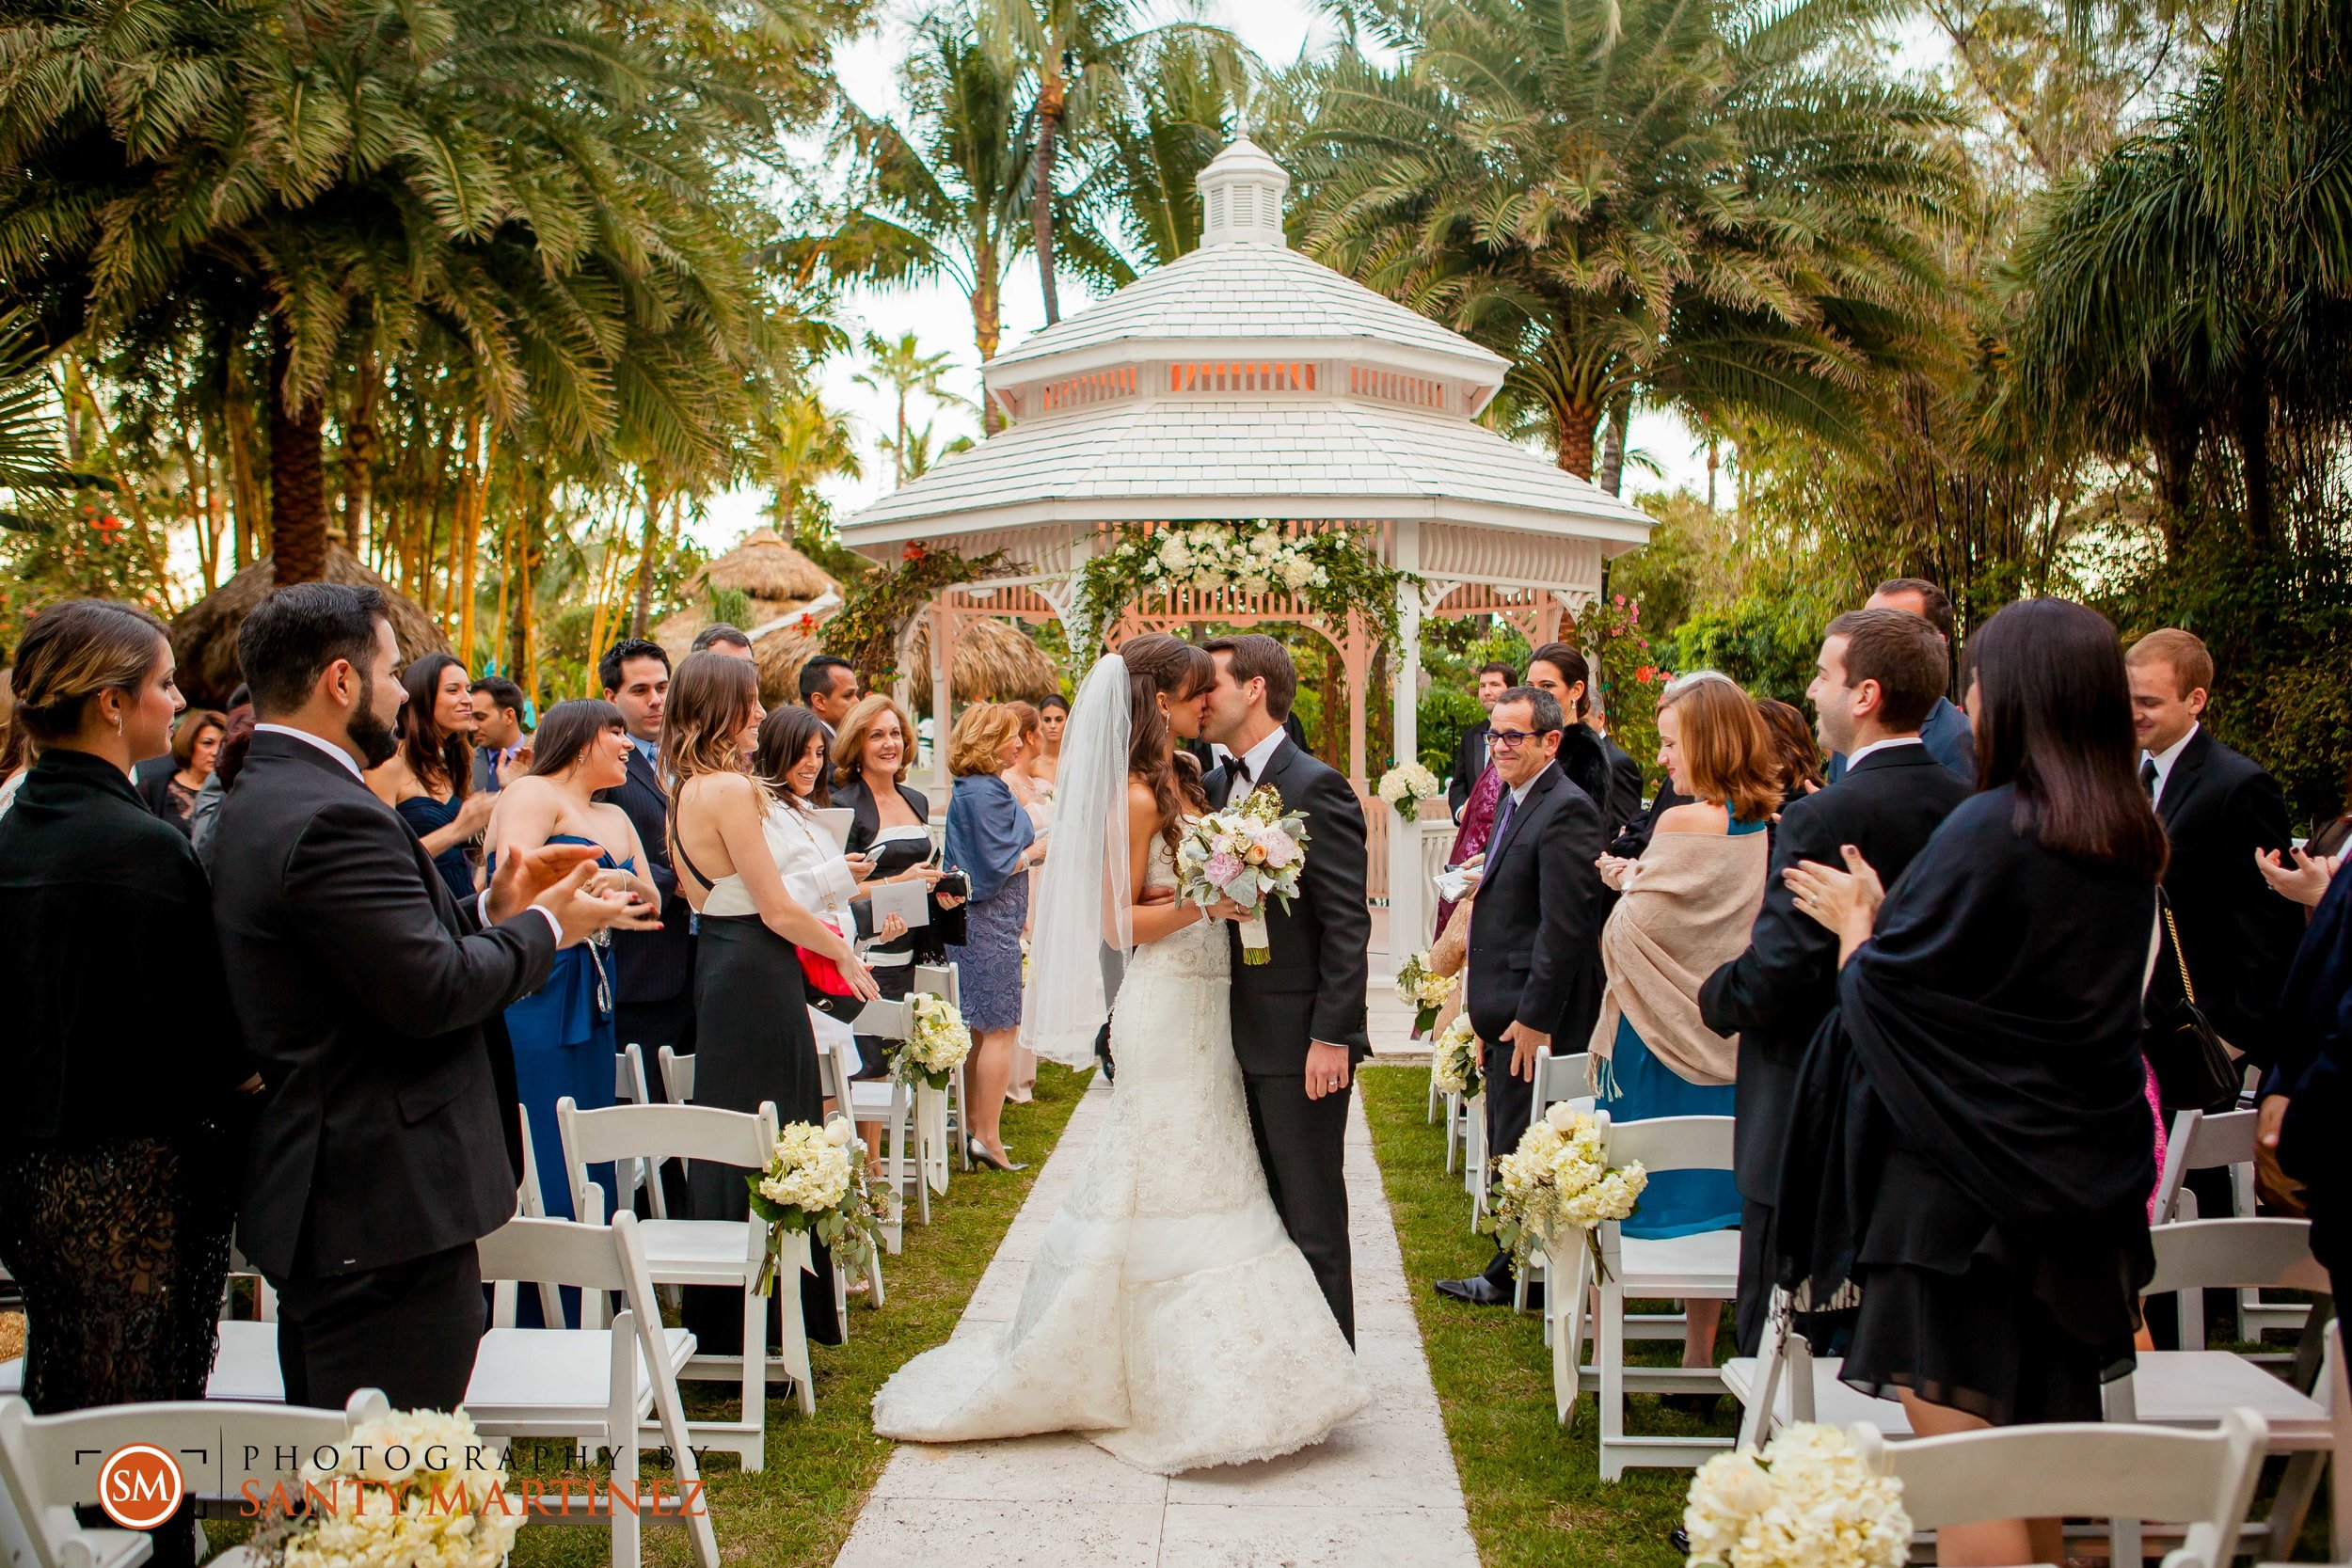 Miami Wedding Photographer - Santy Martinez -28.jpg